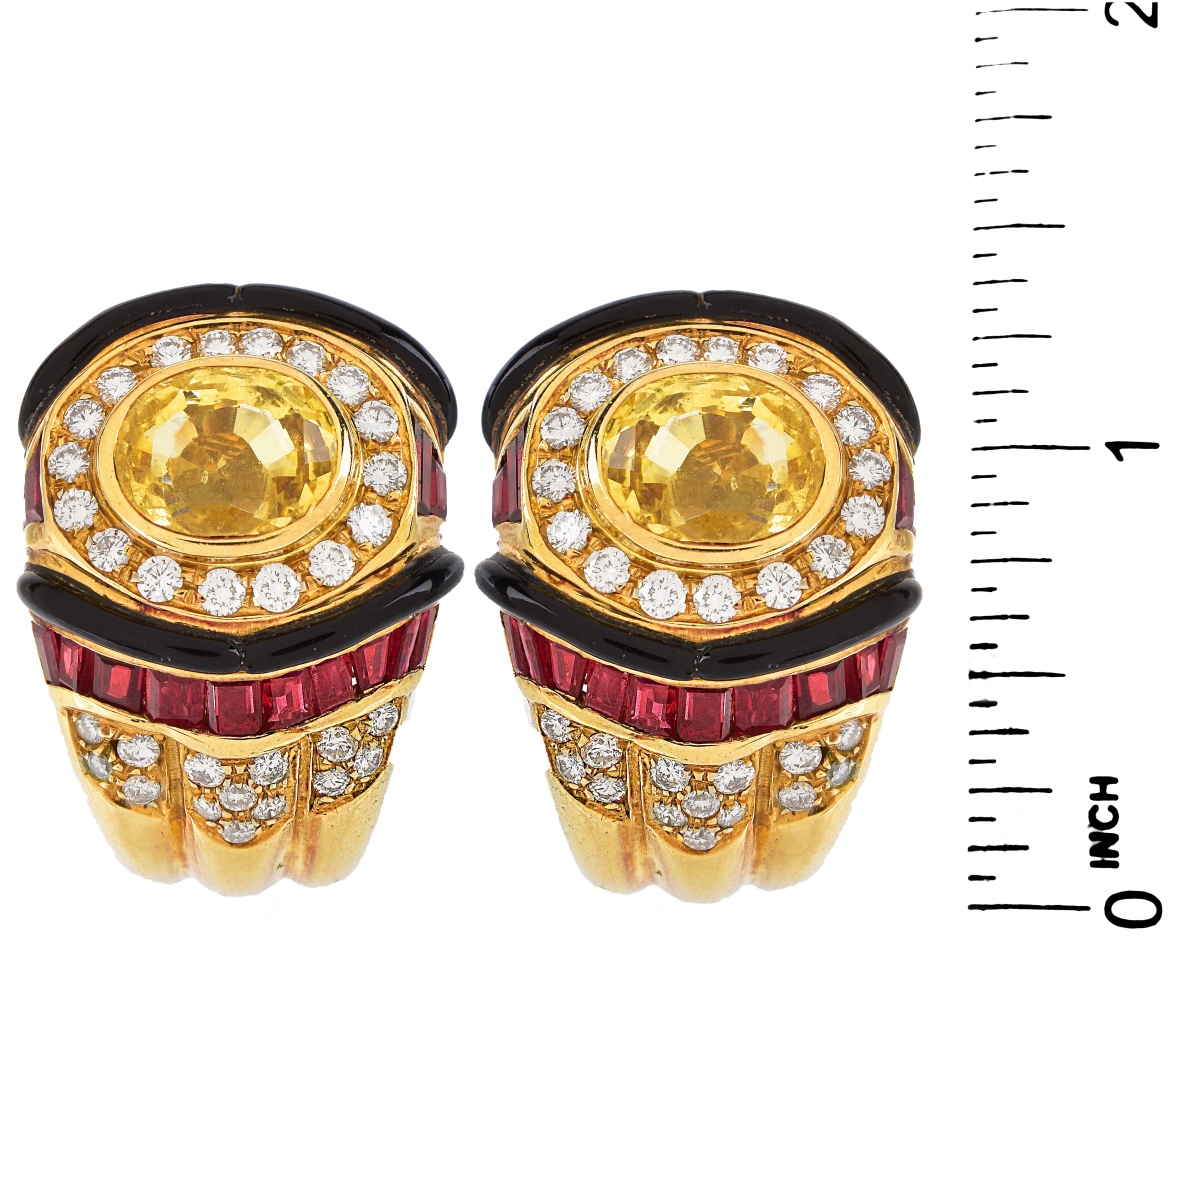 Sapphire, Ruby, Diamond and 18K Gold Earrings